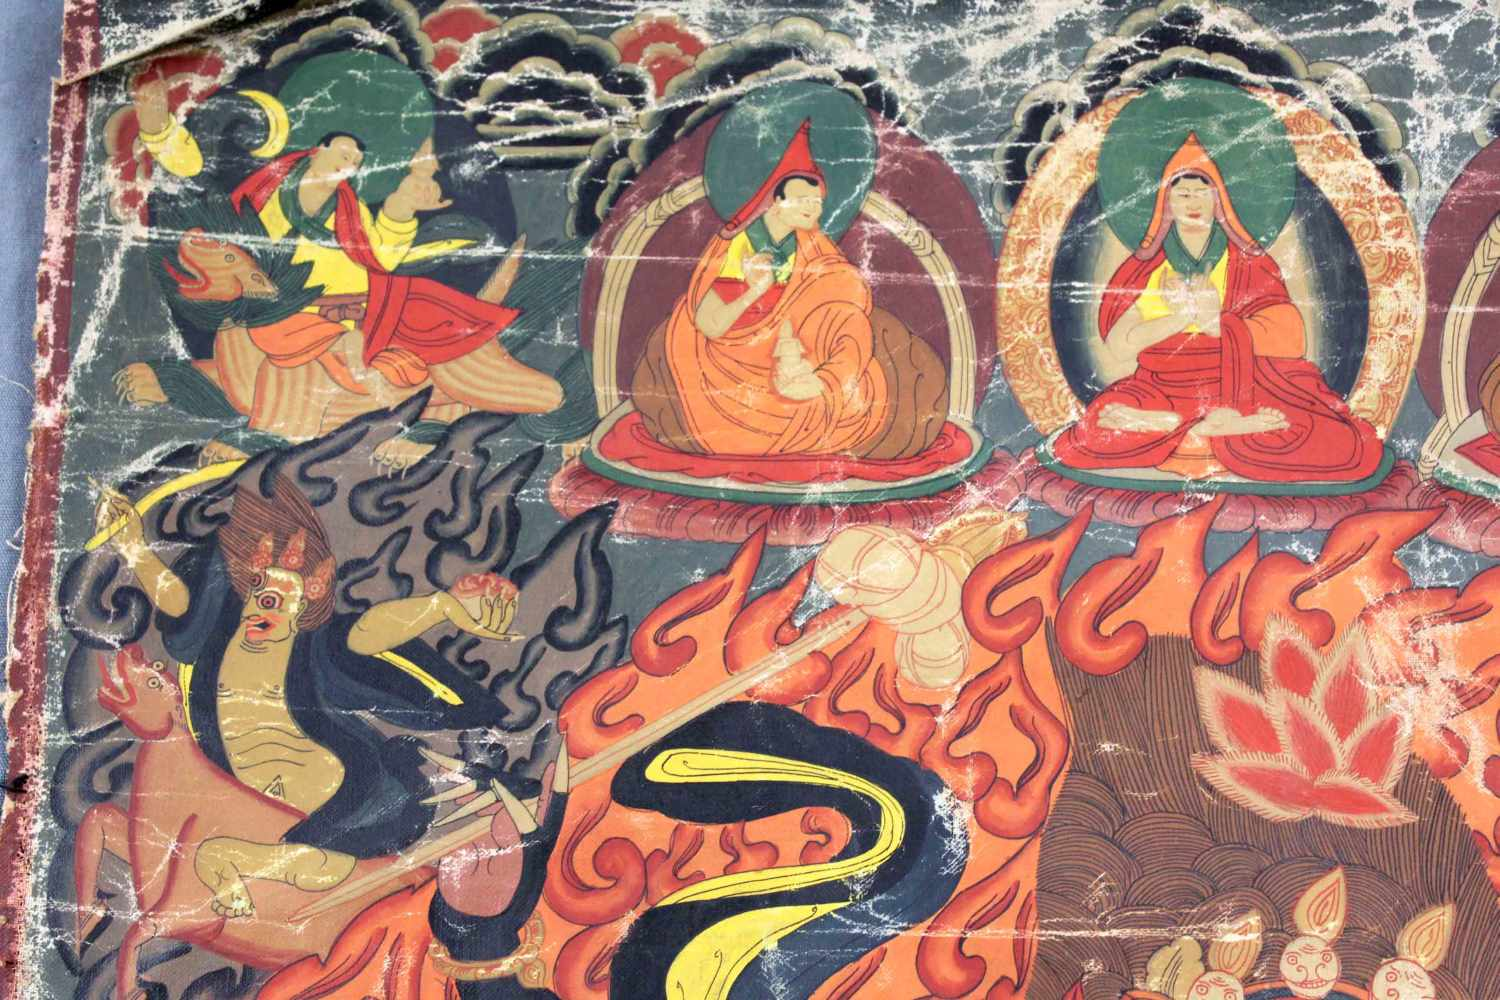 Lot 38 - Darstellung Palden Lhamo ? Thangka, China / Tibet alt.67 cm x 45,5 cm. Gemälde.Depicting Palden